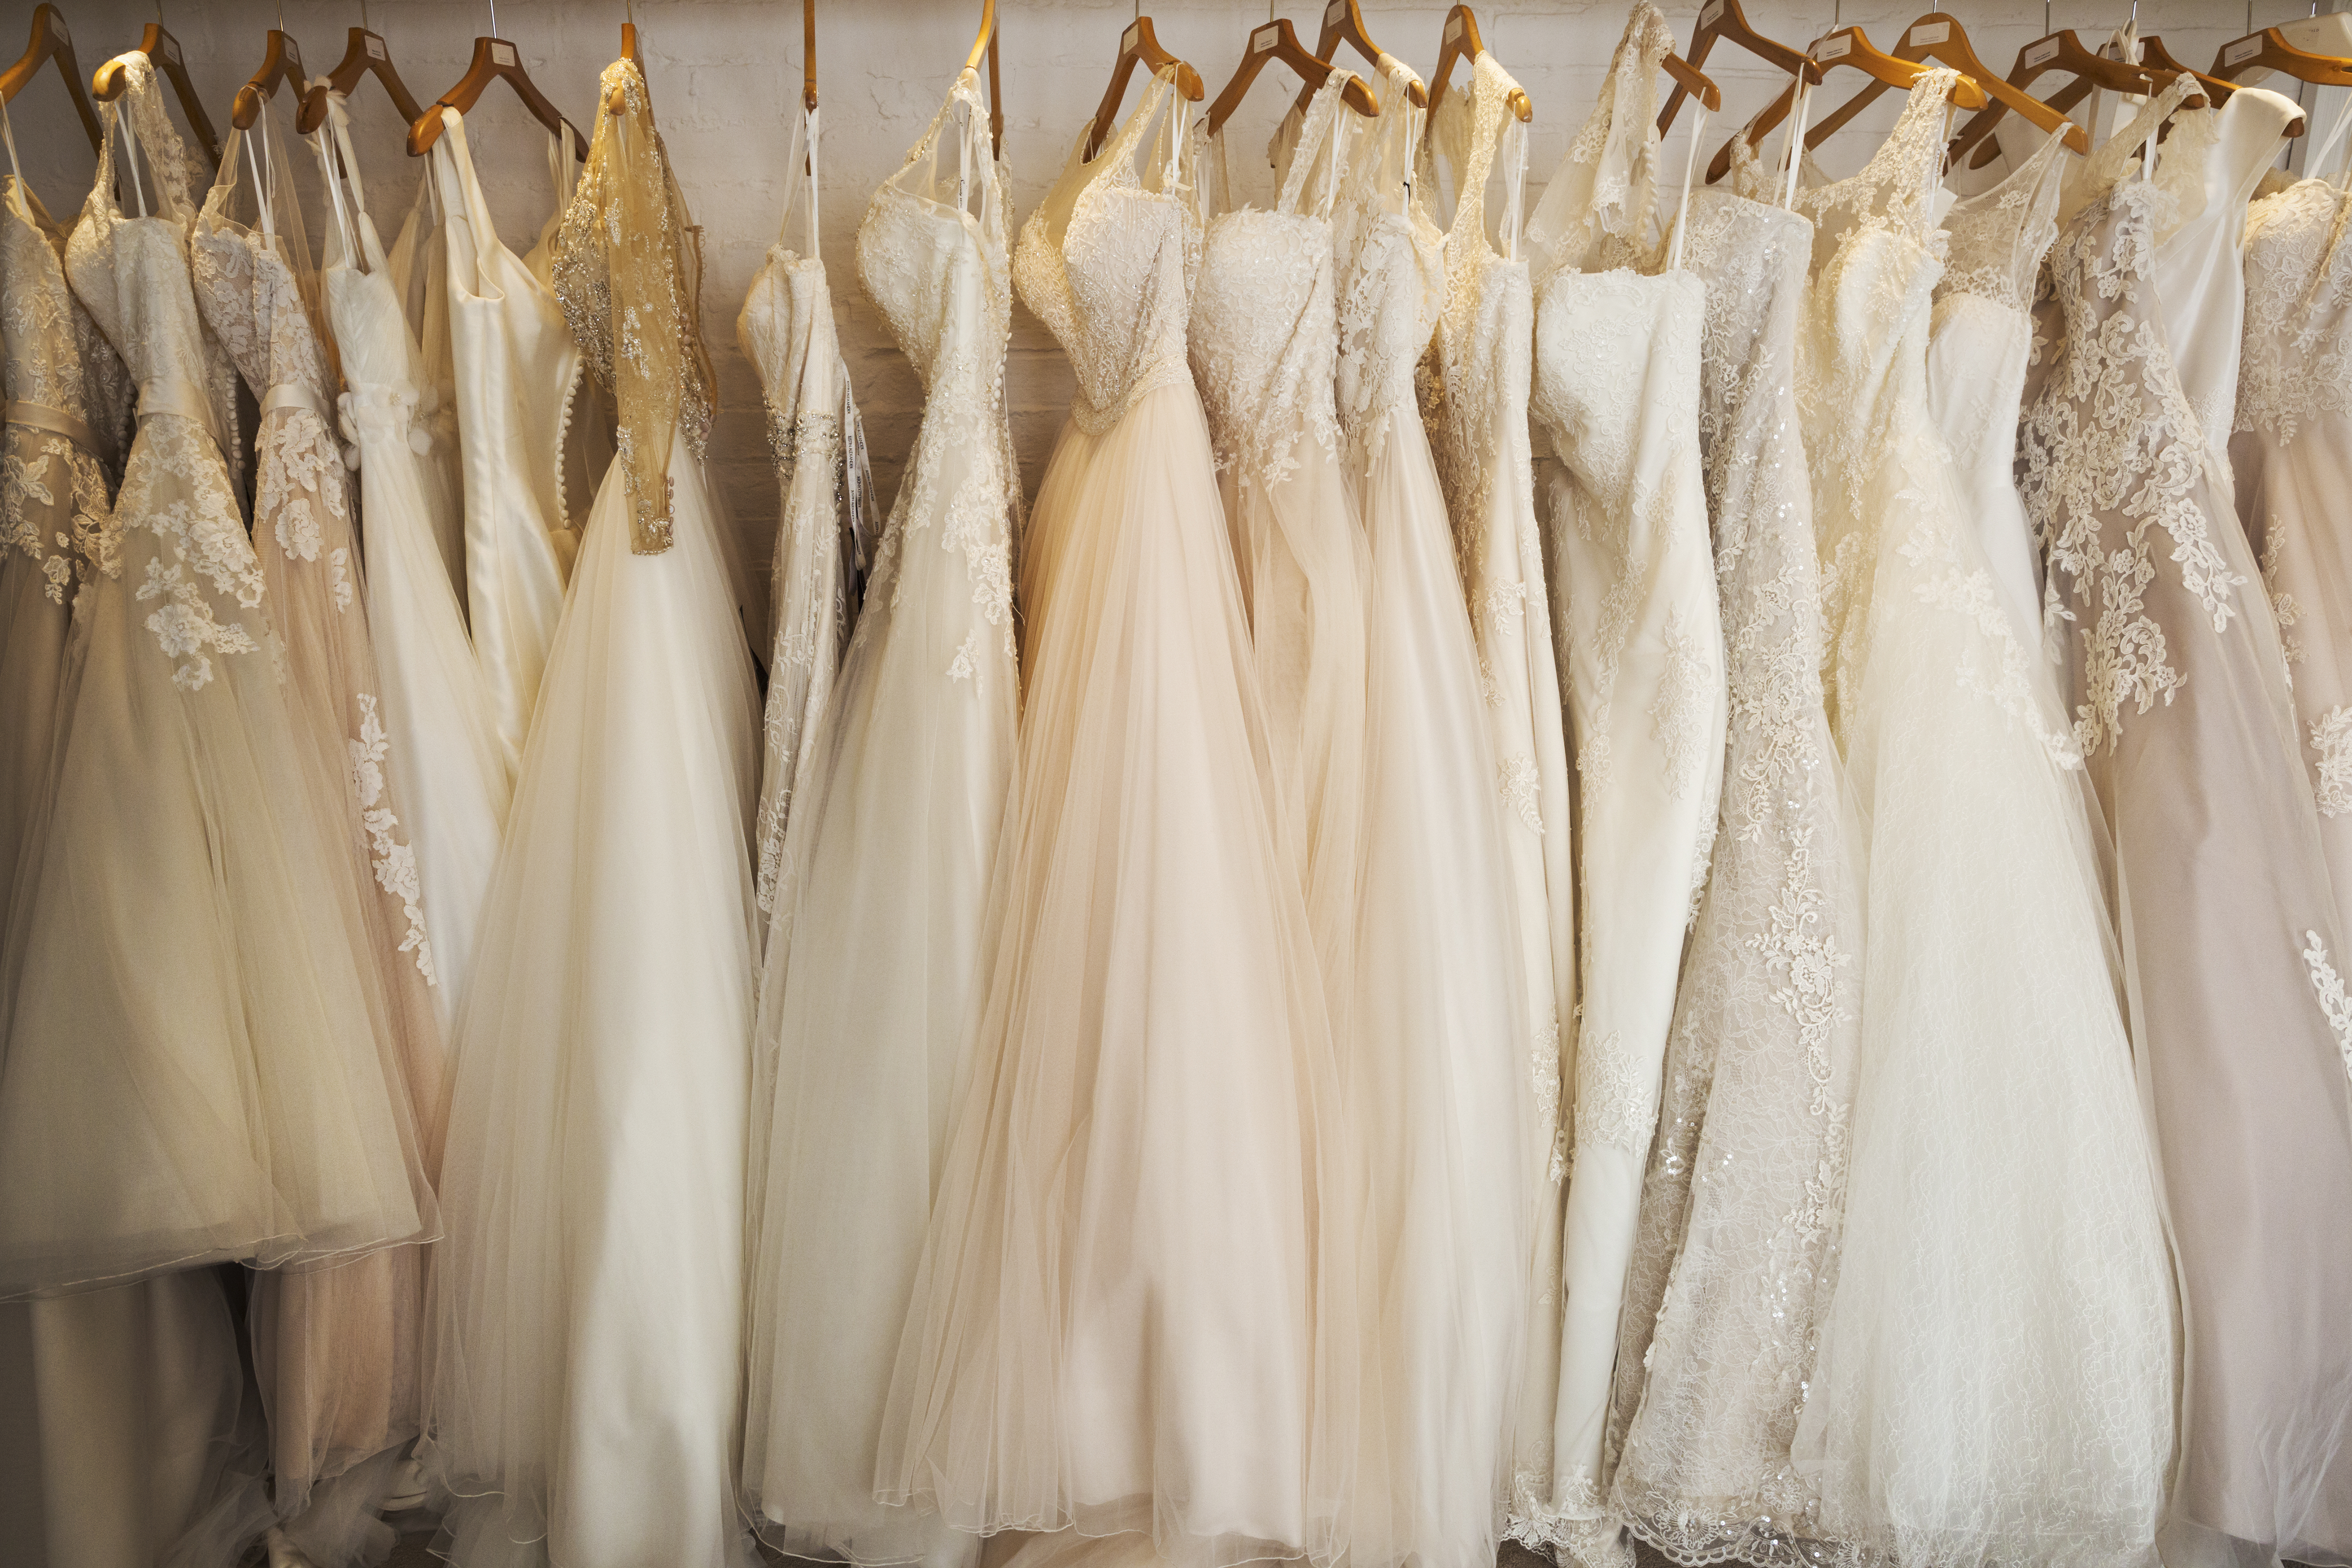 A row of wedding dresses at a wedding shop.